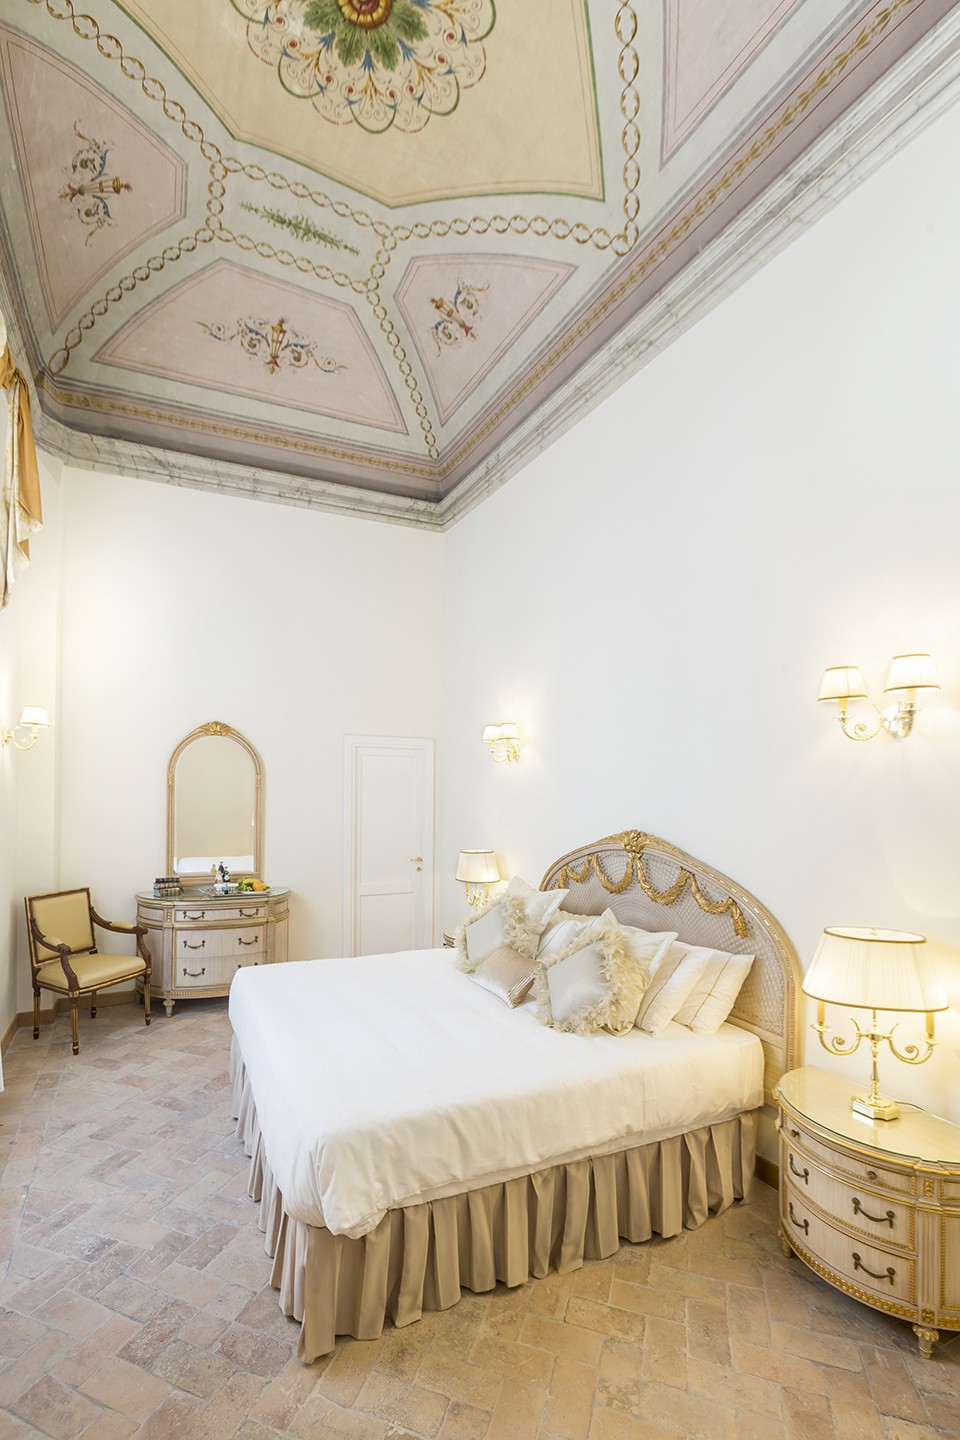 Hotel-Eitch-Borromini-Rome-room-9405